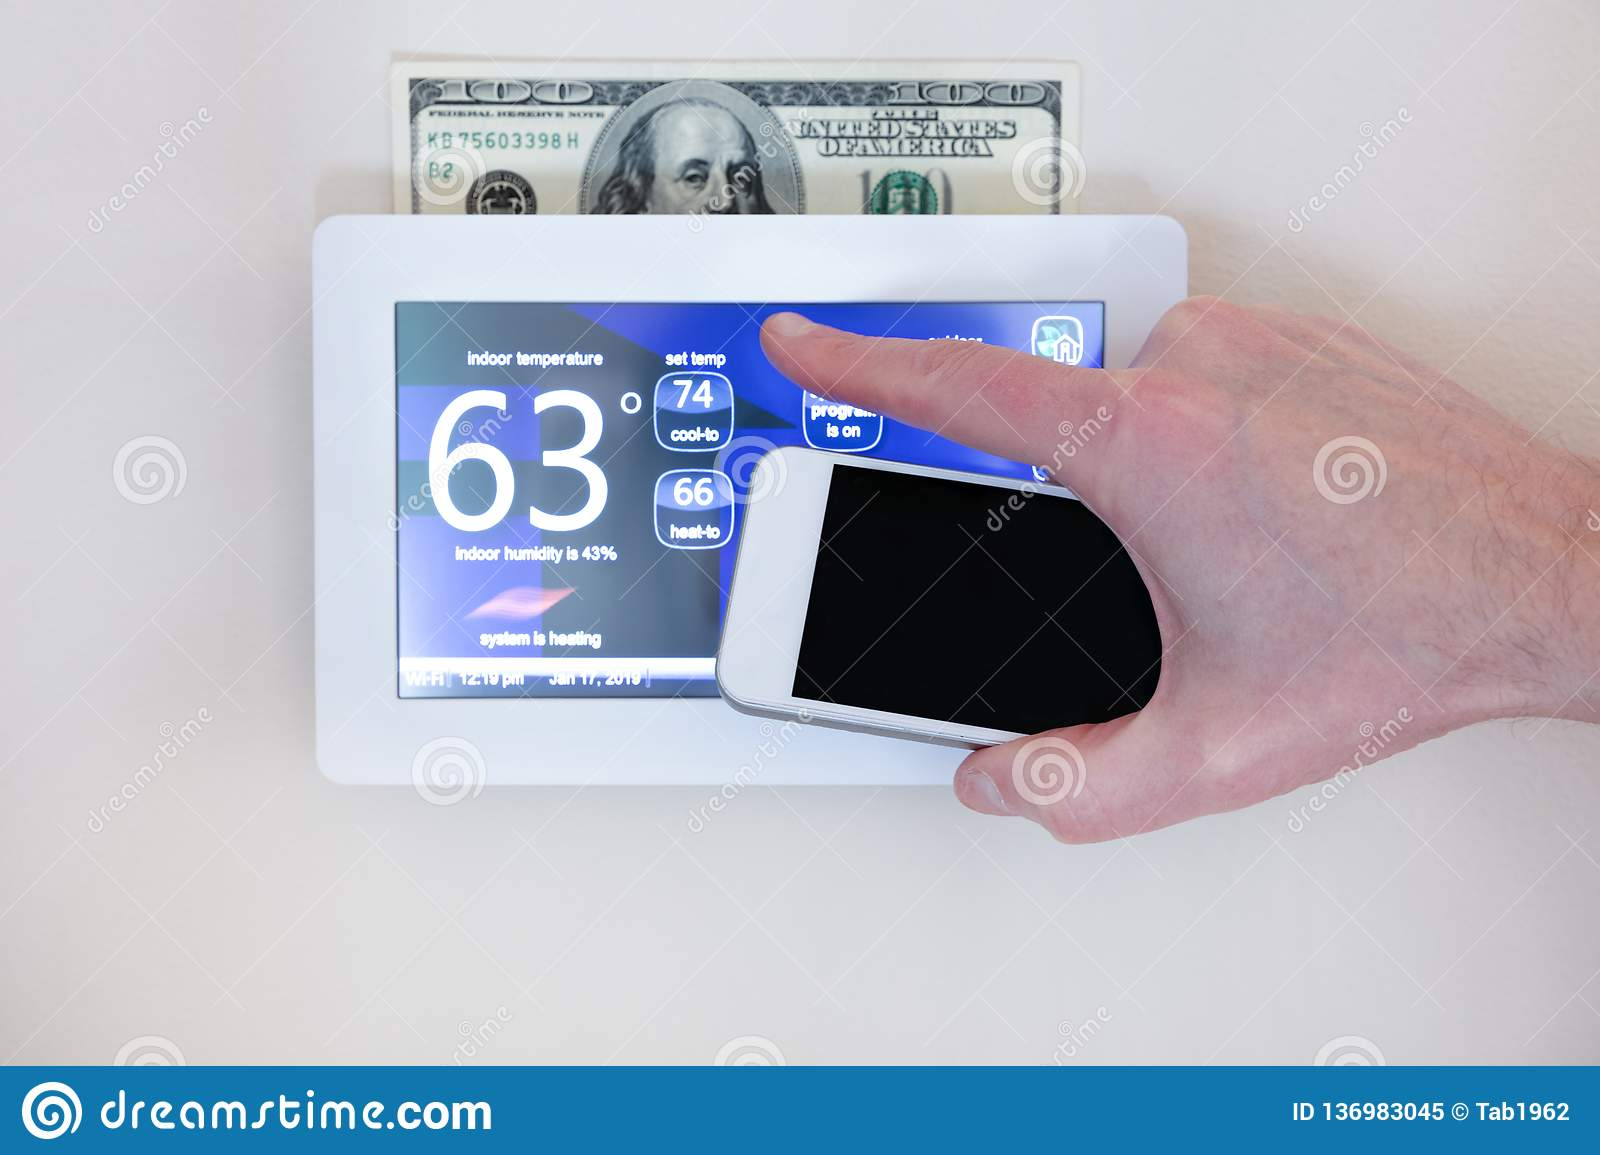 Male hand holding smart phone to operate heating or cooling via digital touch screen thermostat for home energy savings